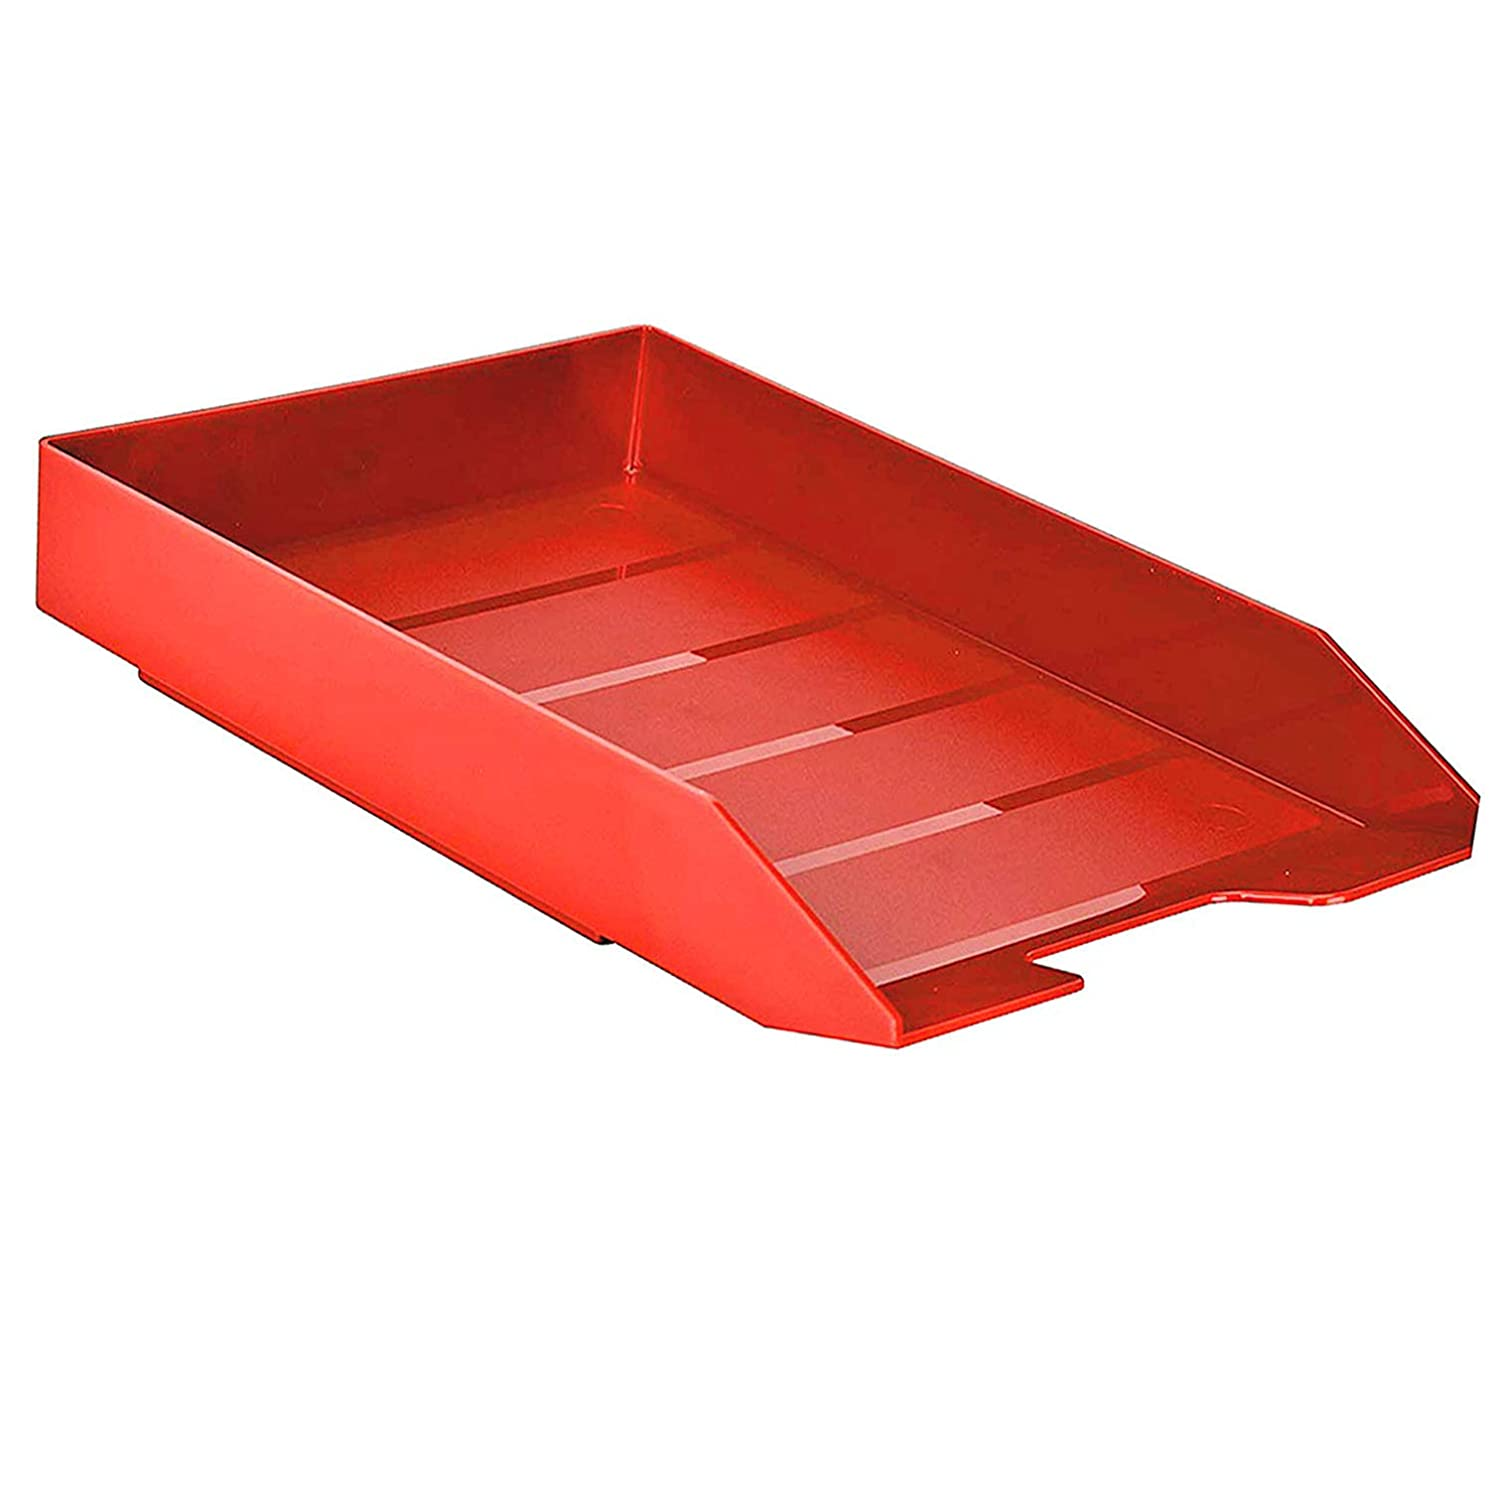 Acrimet Stackable Front Load Letter Size Tray Plastic) (Solid Red Color) (1 Unit)